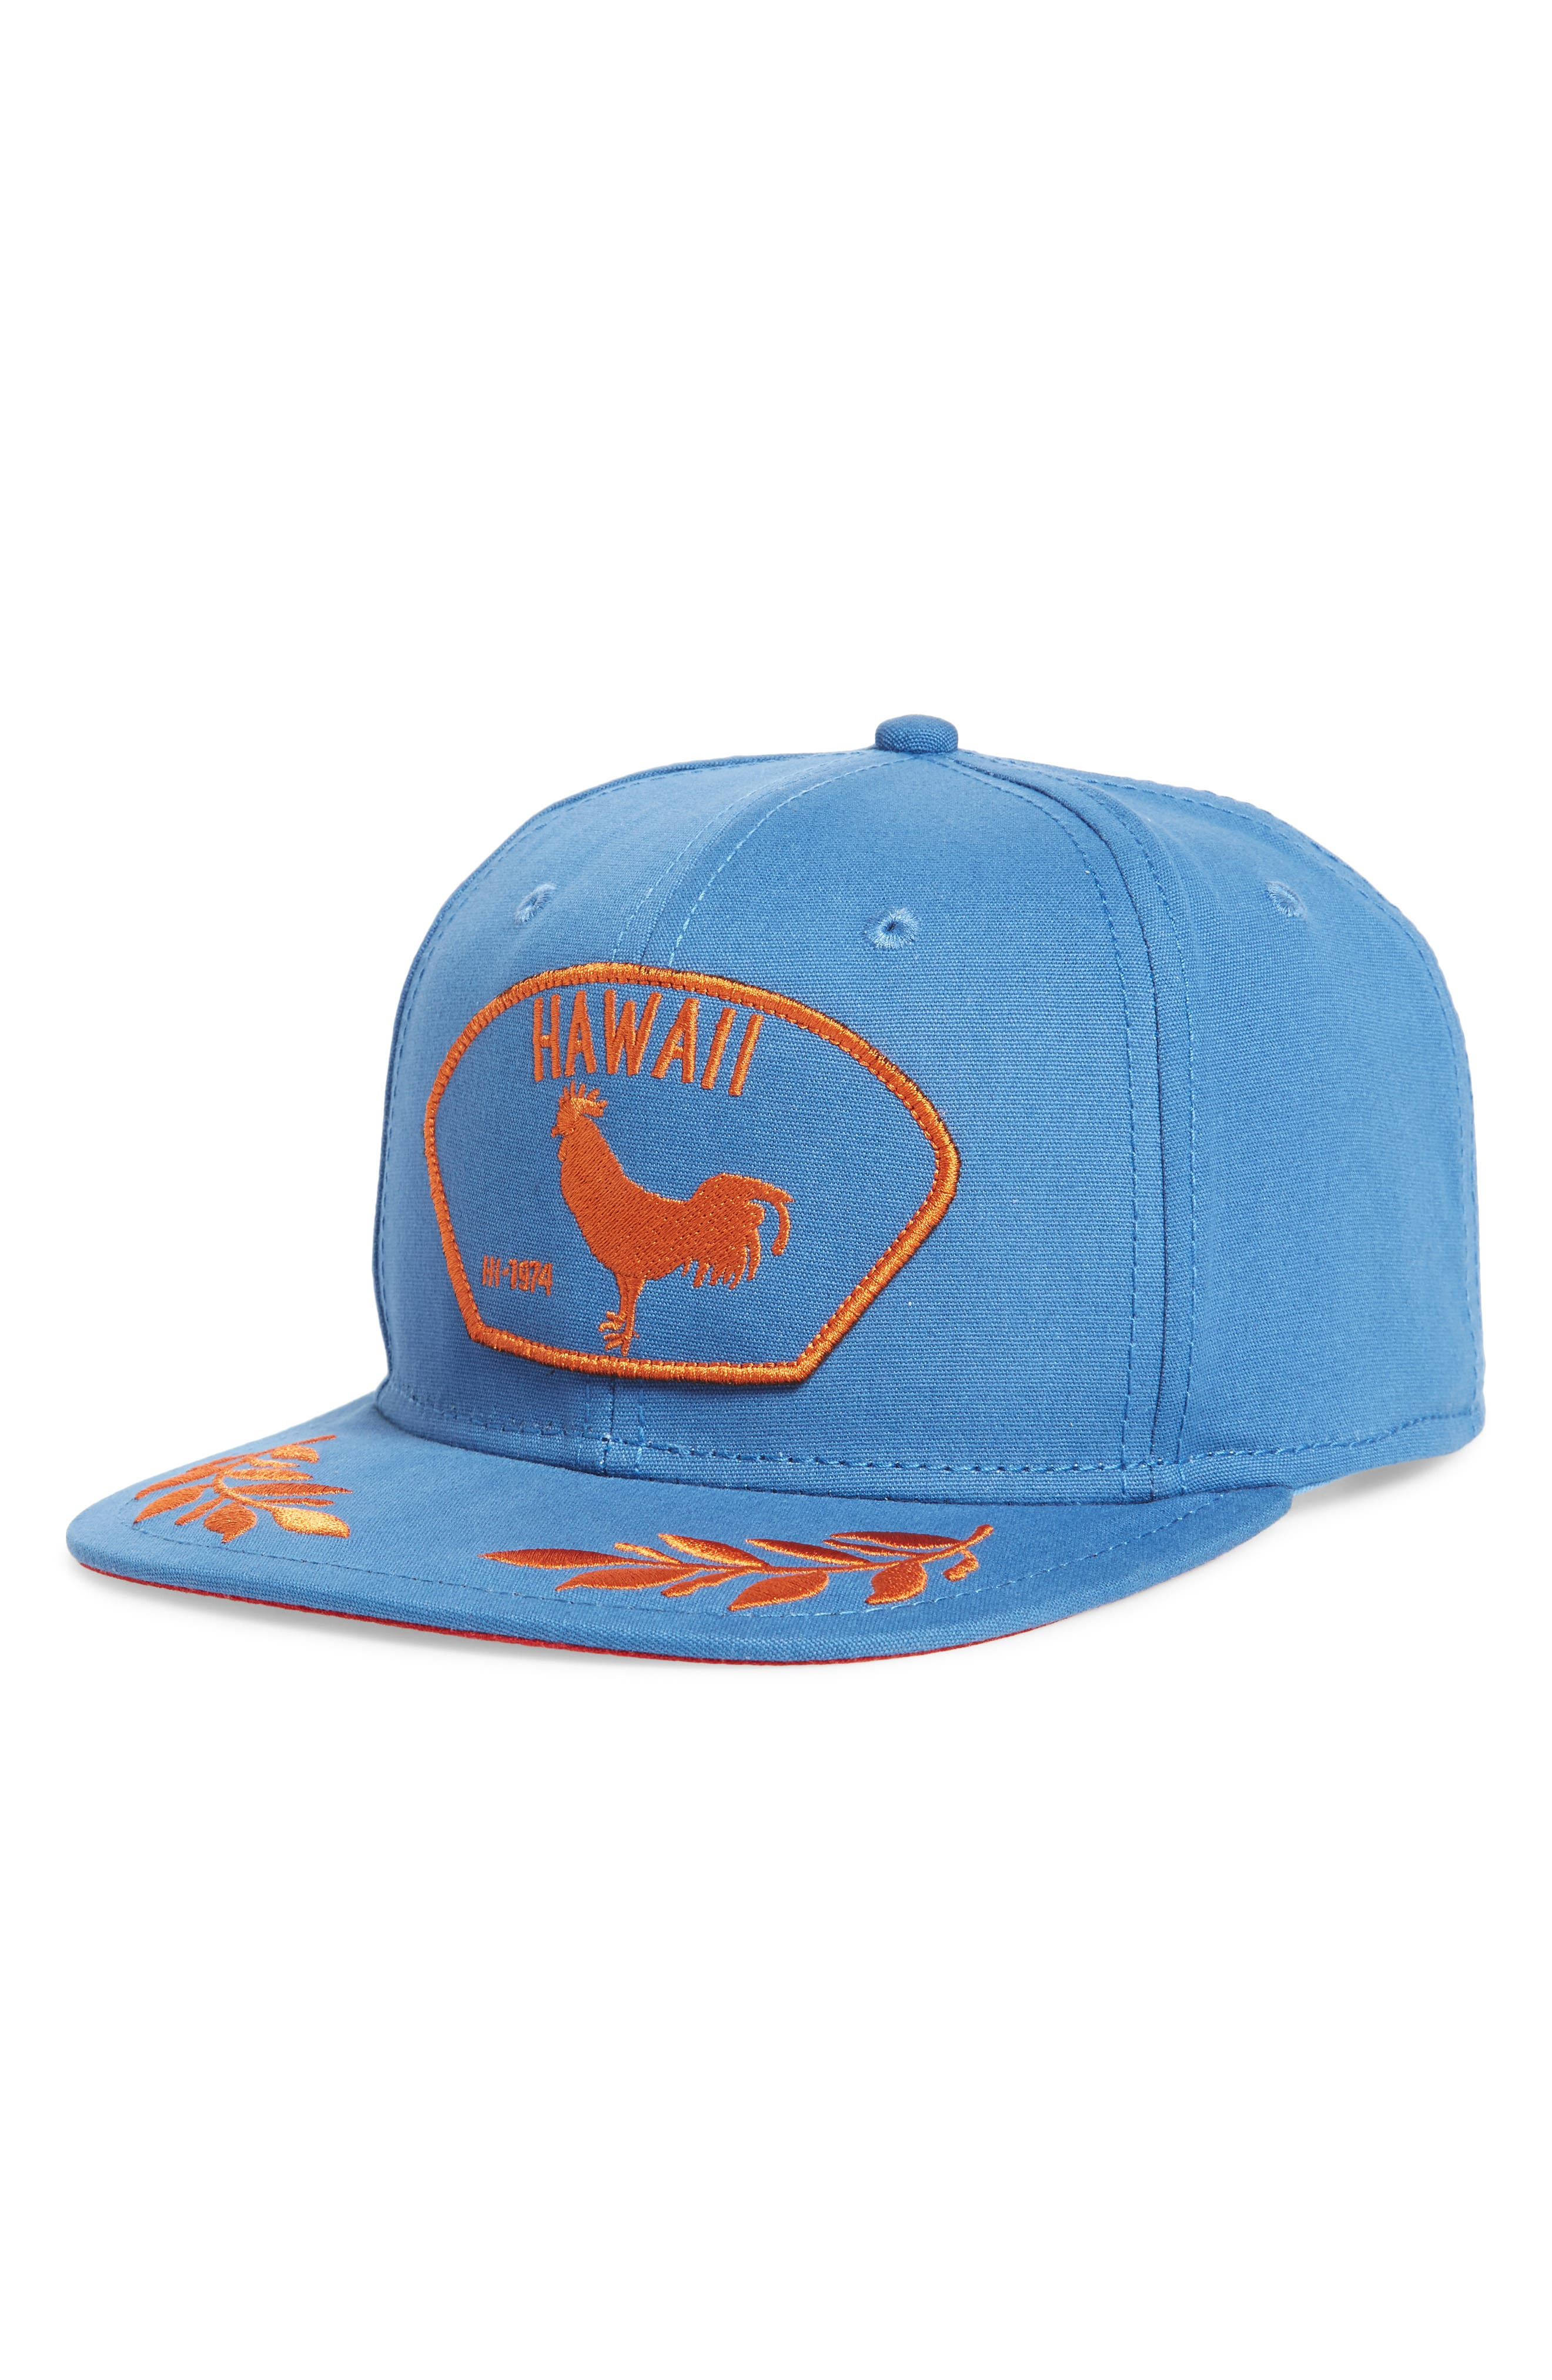 Island Bird Snapback Baseball Cap,                             Main thumbnail 1, color,                             Blue